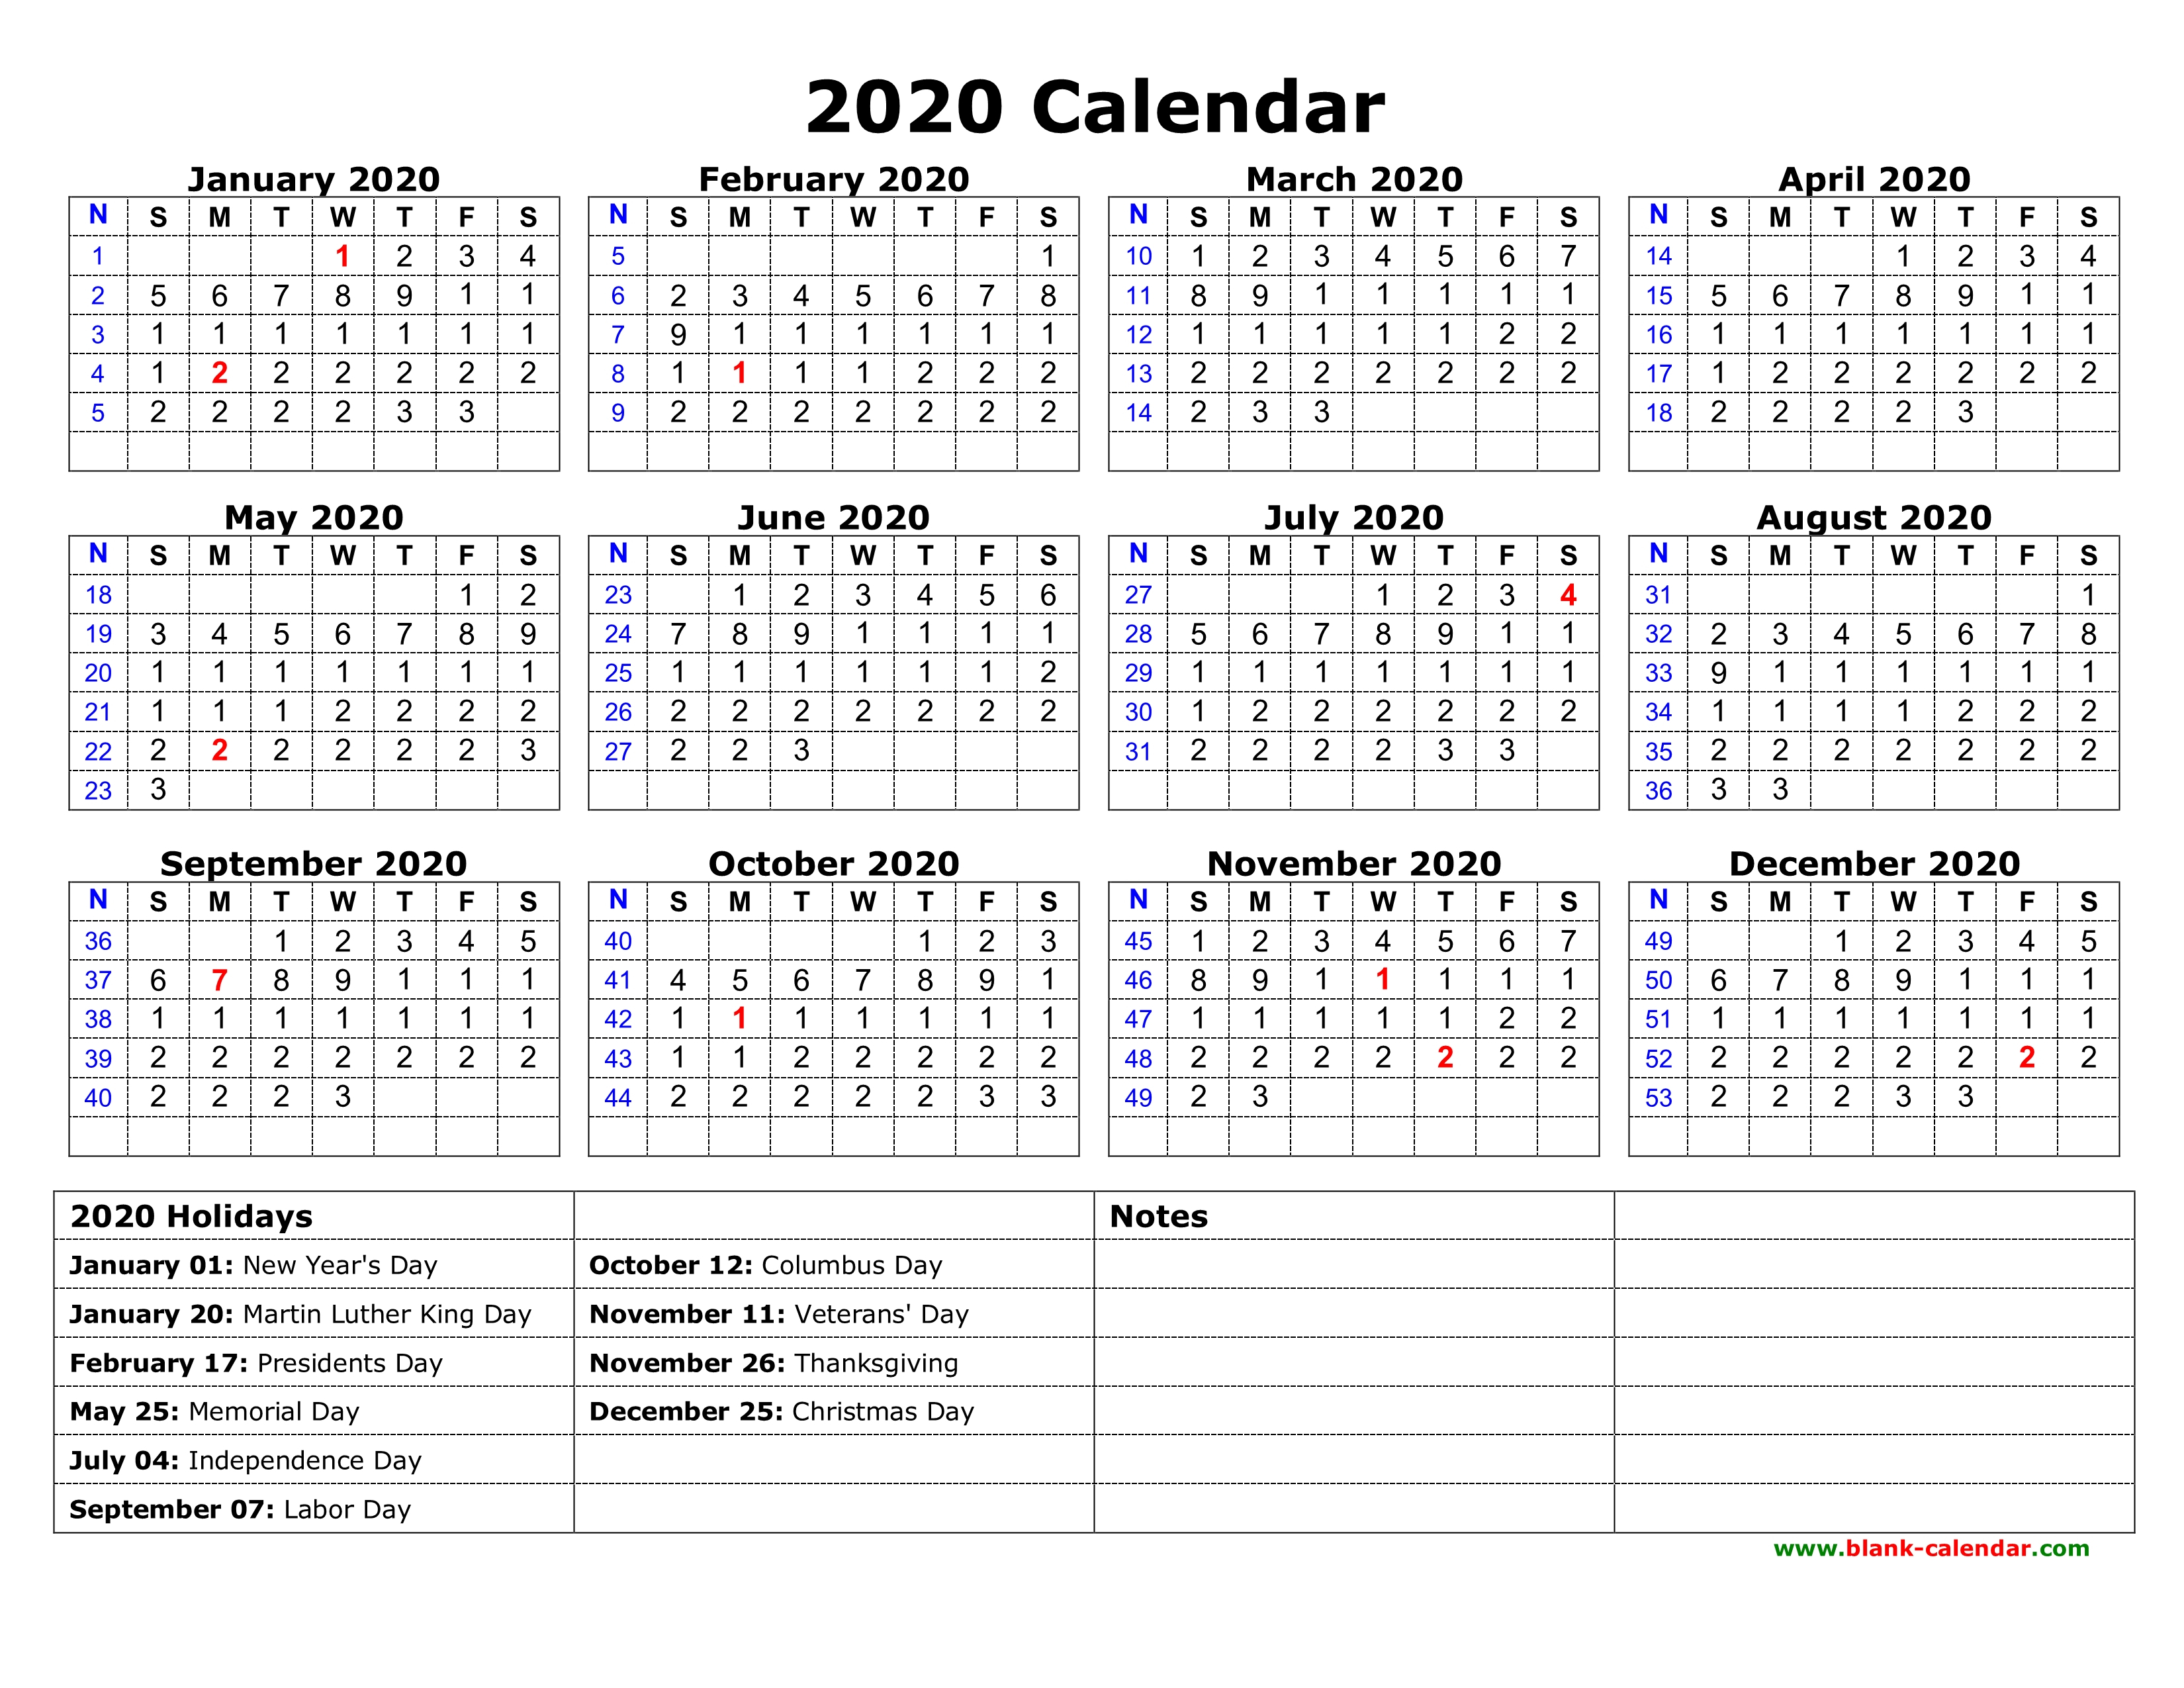 Free Download Printable Calendar 2020 With Us Federal Holidays, One within Free 2020Printable Calendars Without Downloading